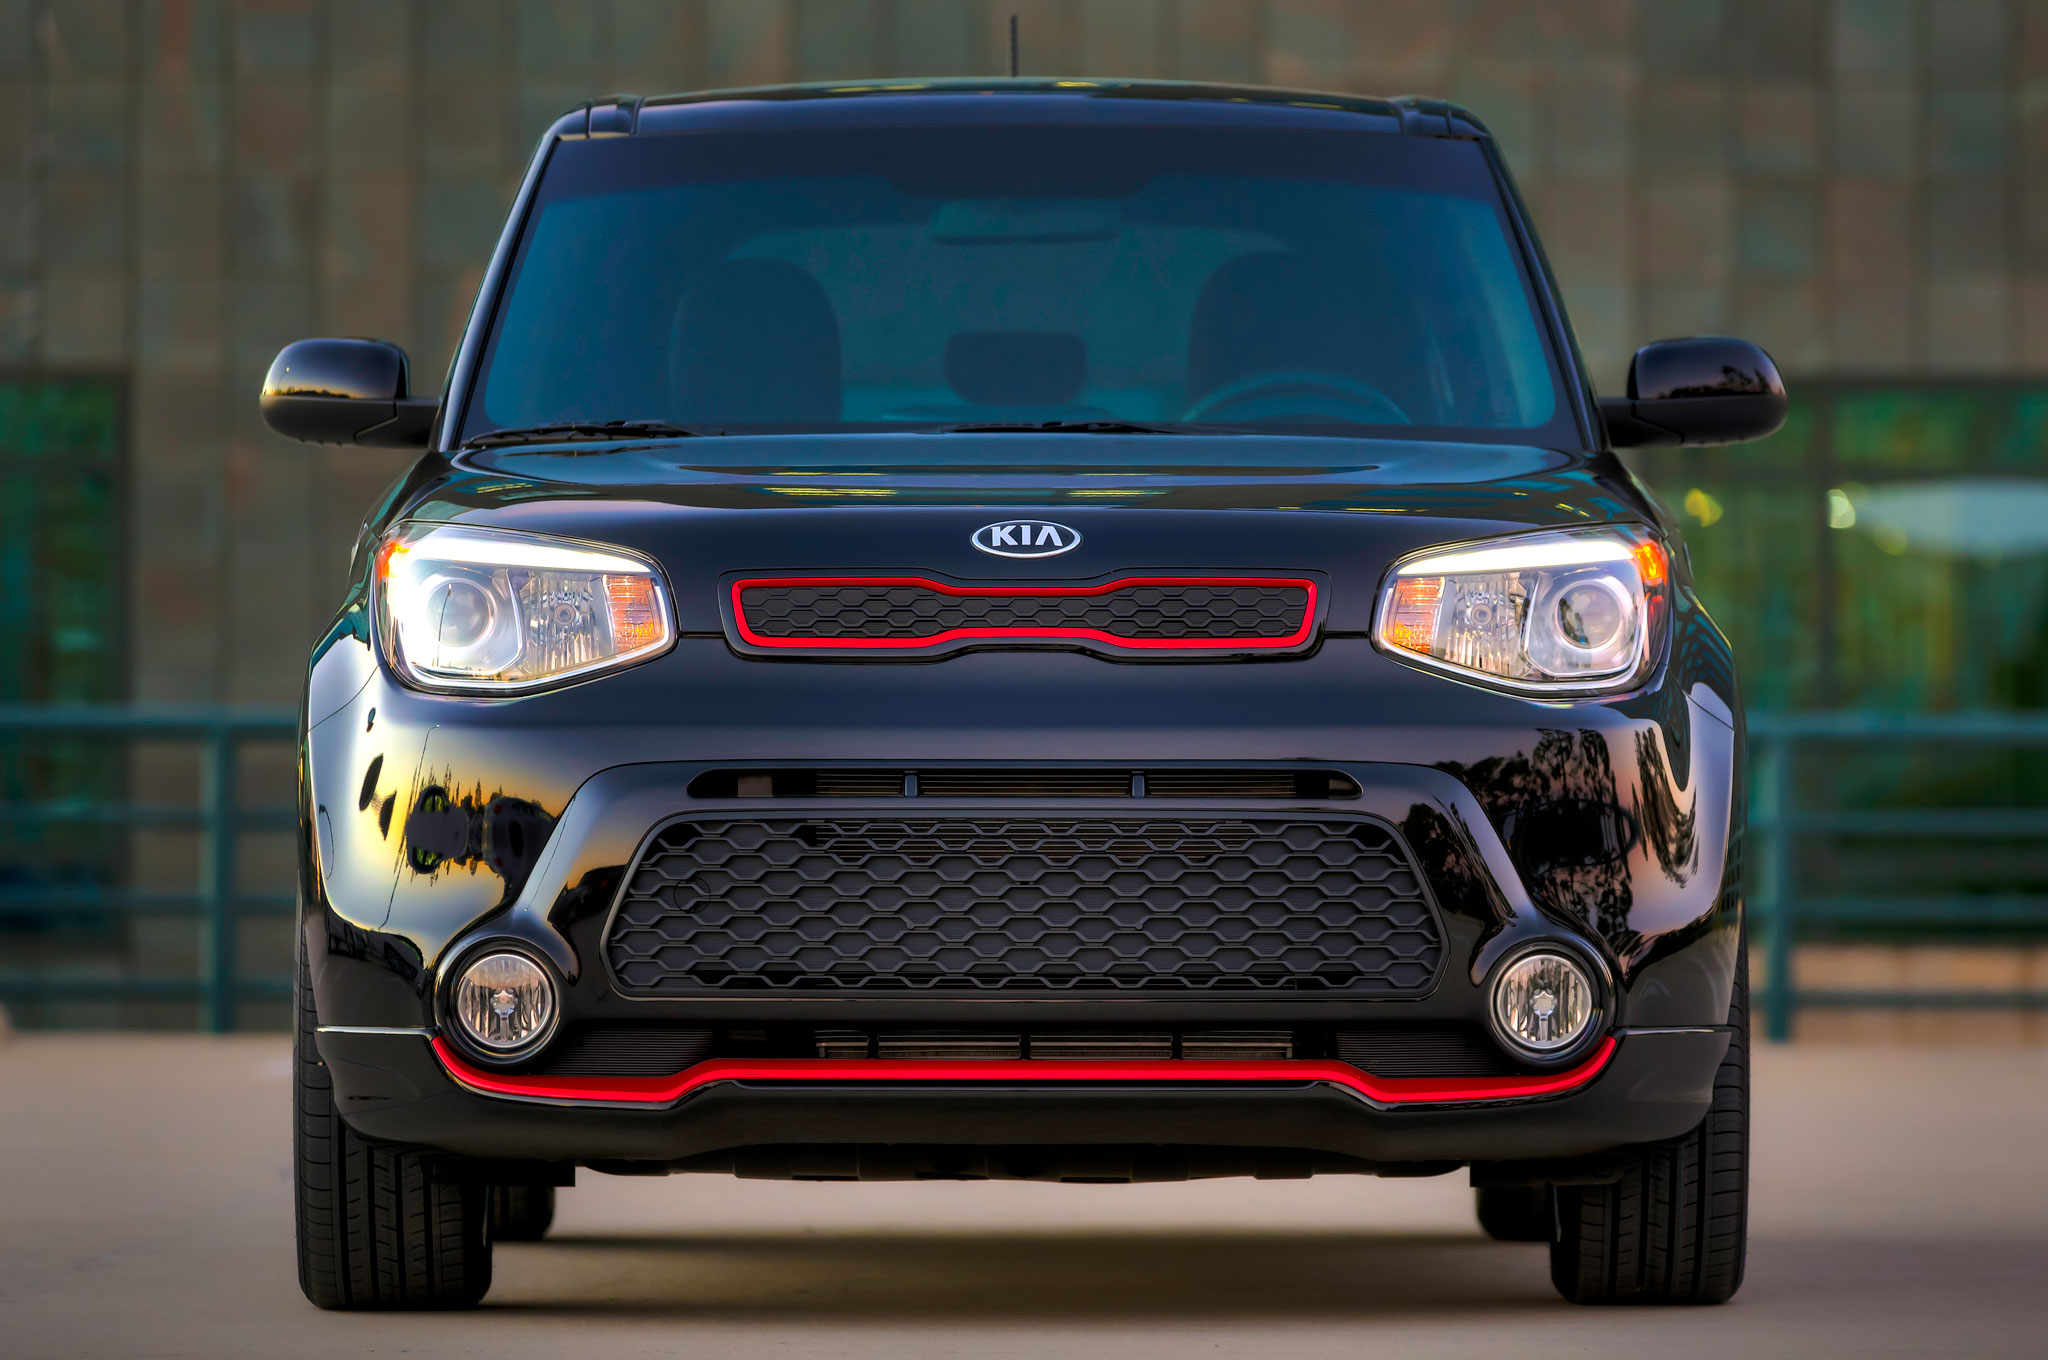 2016 kia soul adds new standard features updated packages rh automobilemag com Kia Soul Colors 2011 Kia Soul Manual